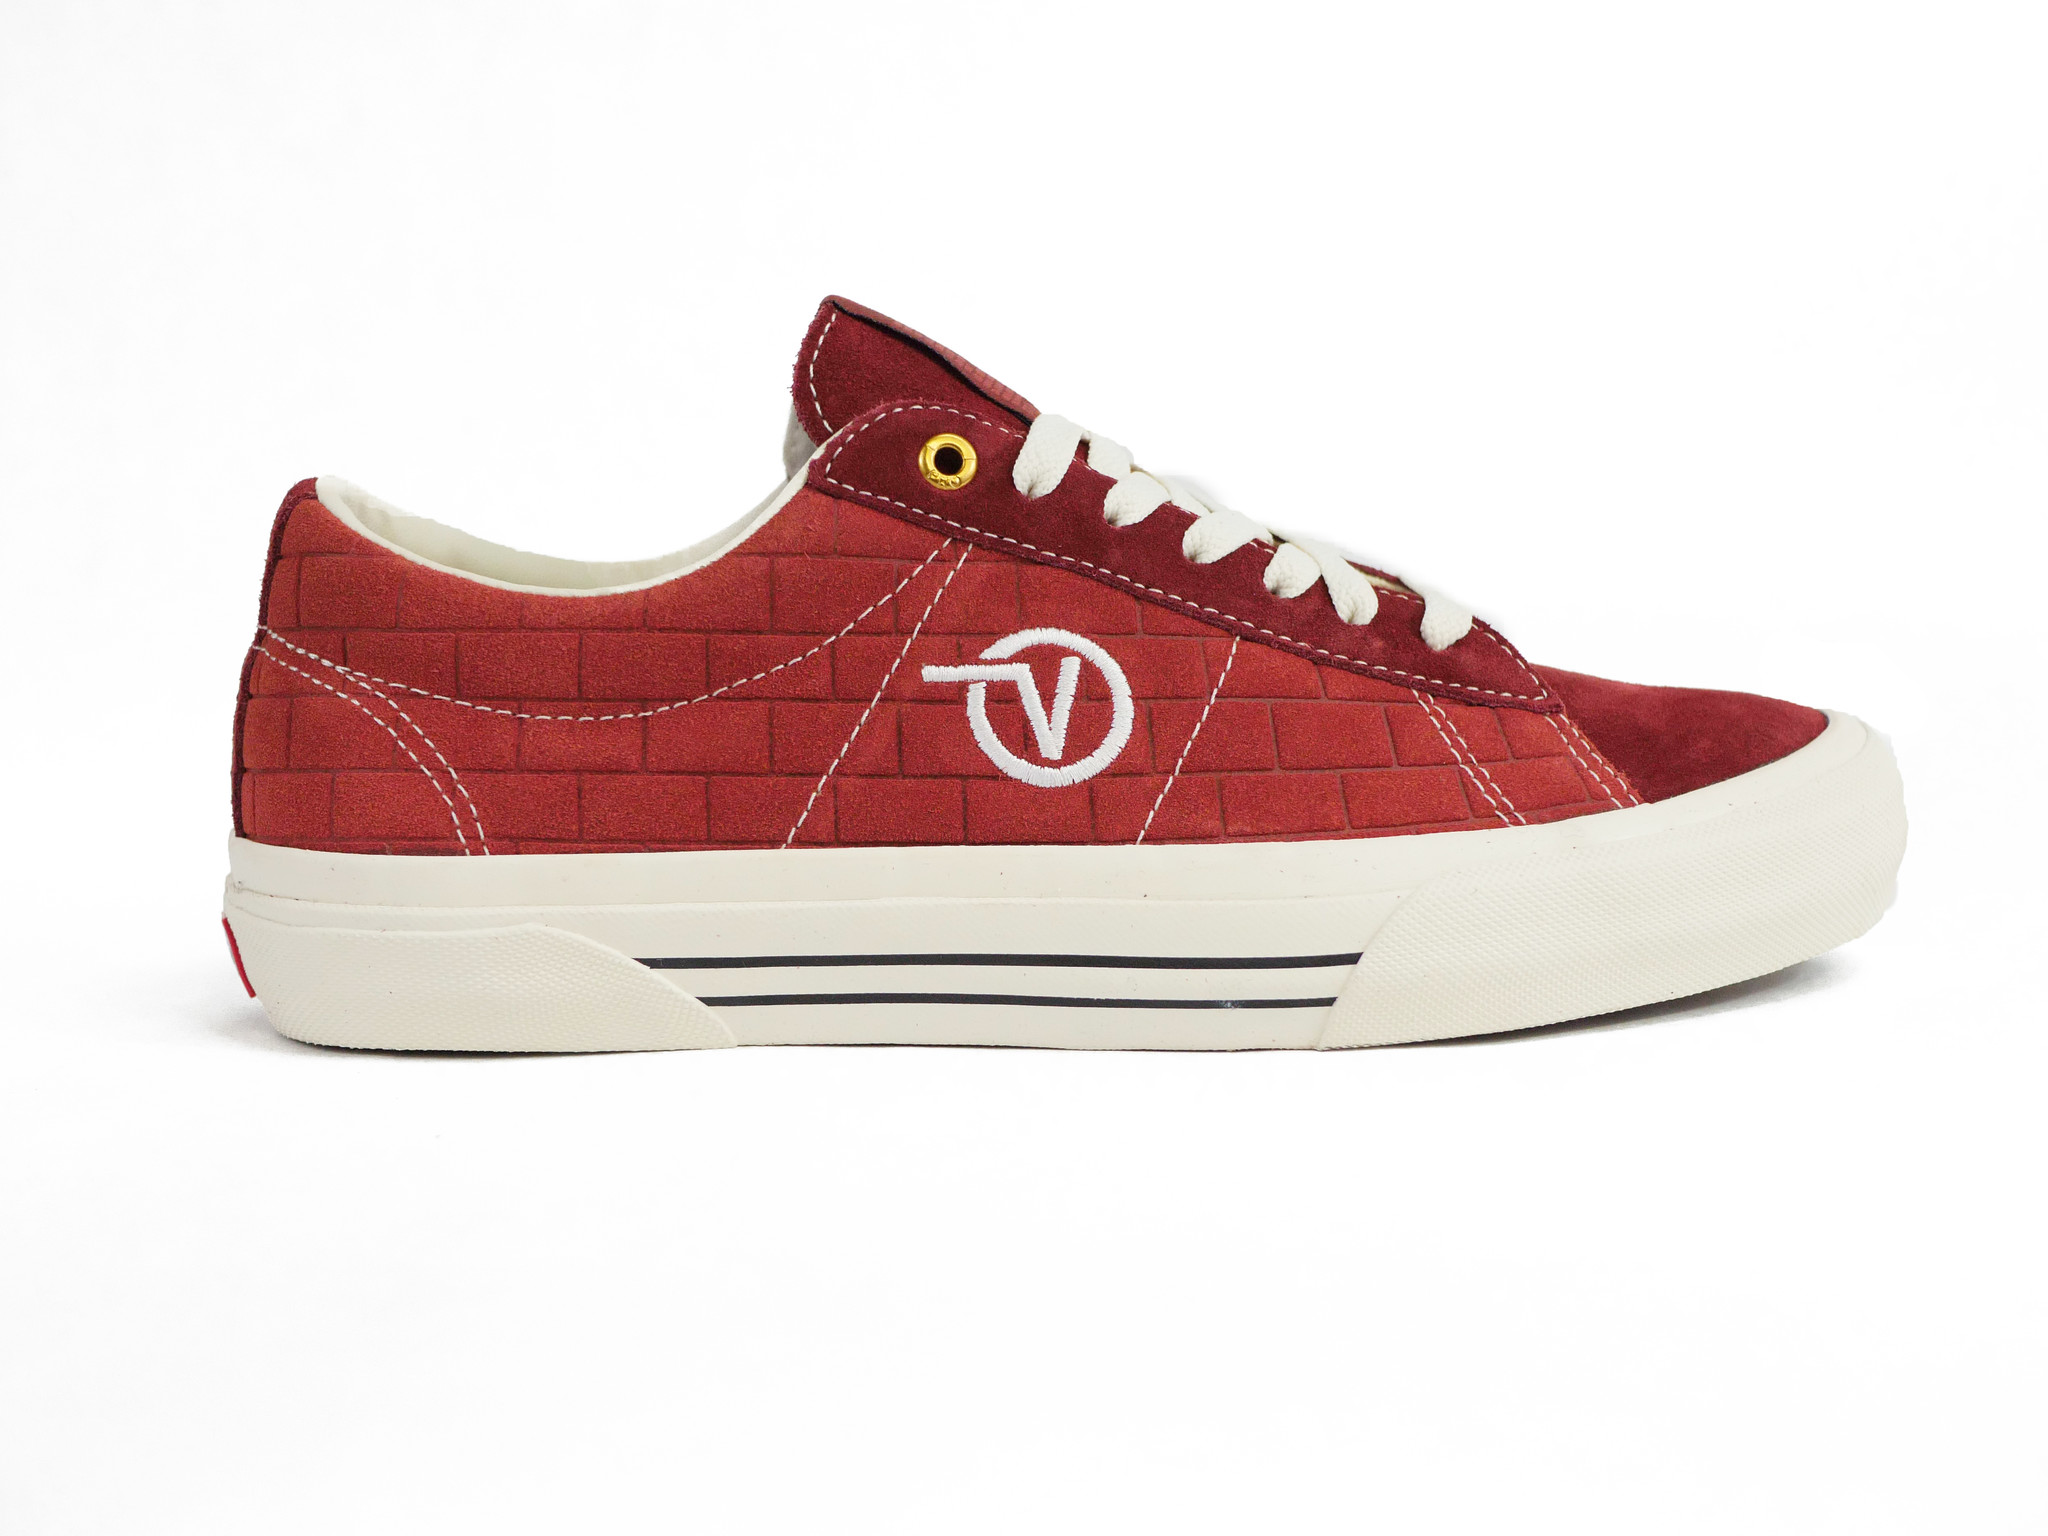 VANS VANS SID PRO LTD PASS~PORT BRICK RED